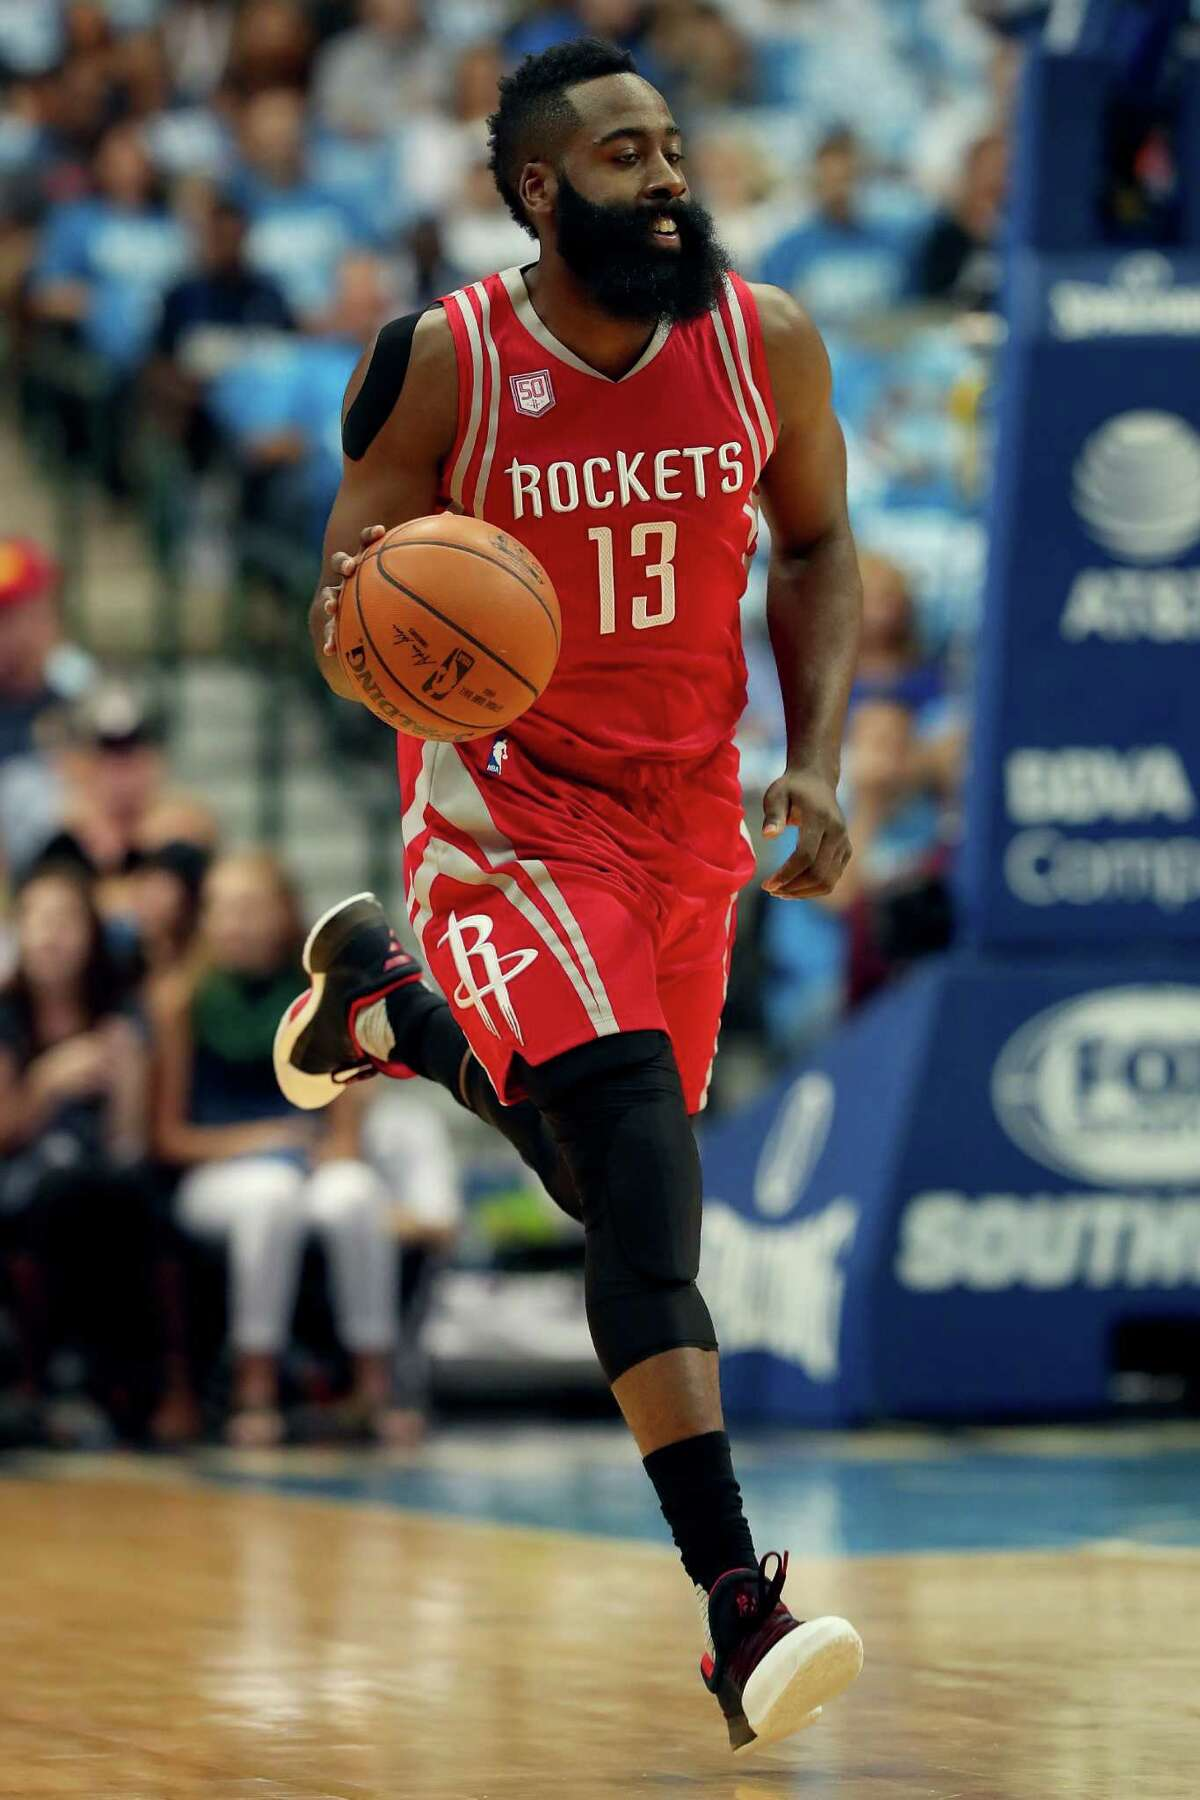 A Rockets teammate of guard James Harden say his passes and anticipation on the court make it seem as if he has eyes